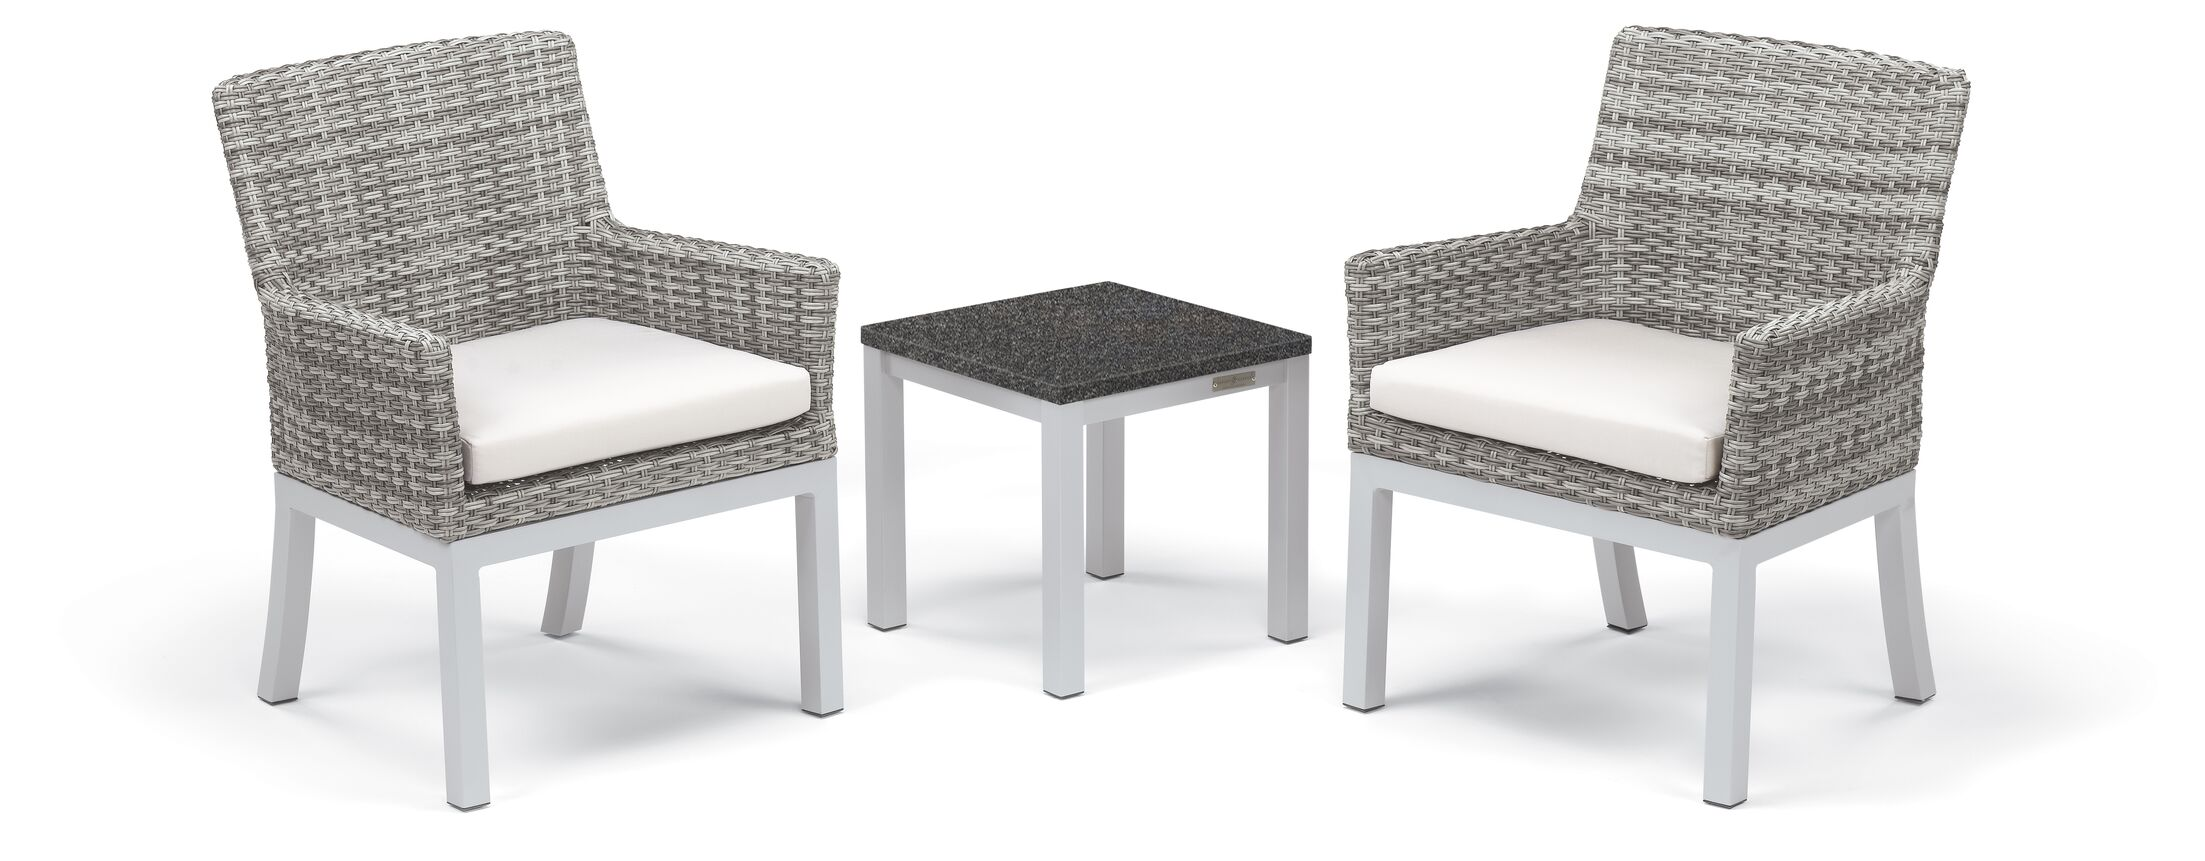 Lambright 3 Piece Conversation Set with Cushions Frame Color: Charcoal, Fabric: Eggshell White